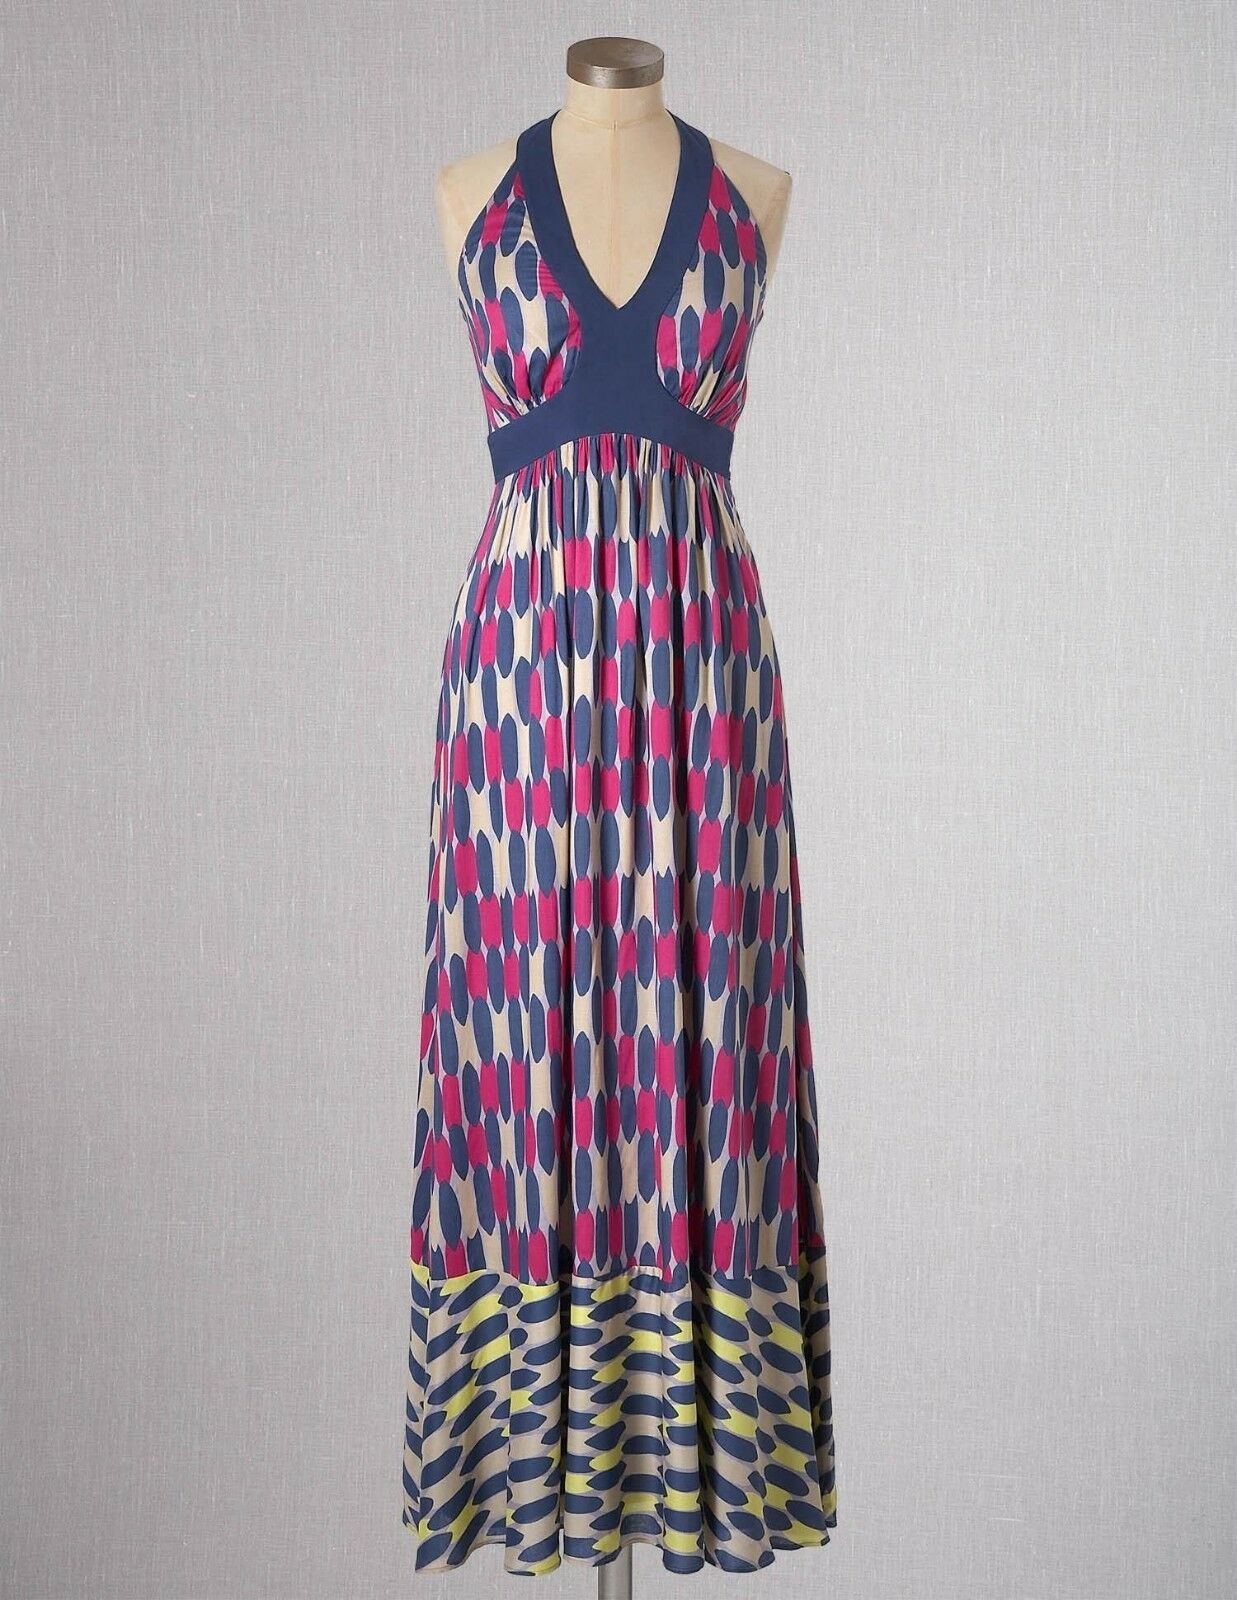 NWT Boden Floaty Viscose Halterneck Glam Summer Maxi Dress Größe US 12